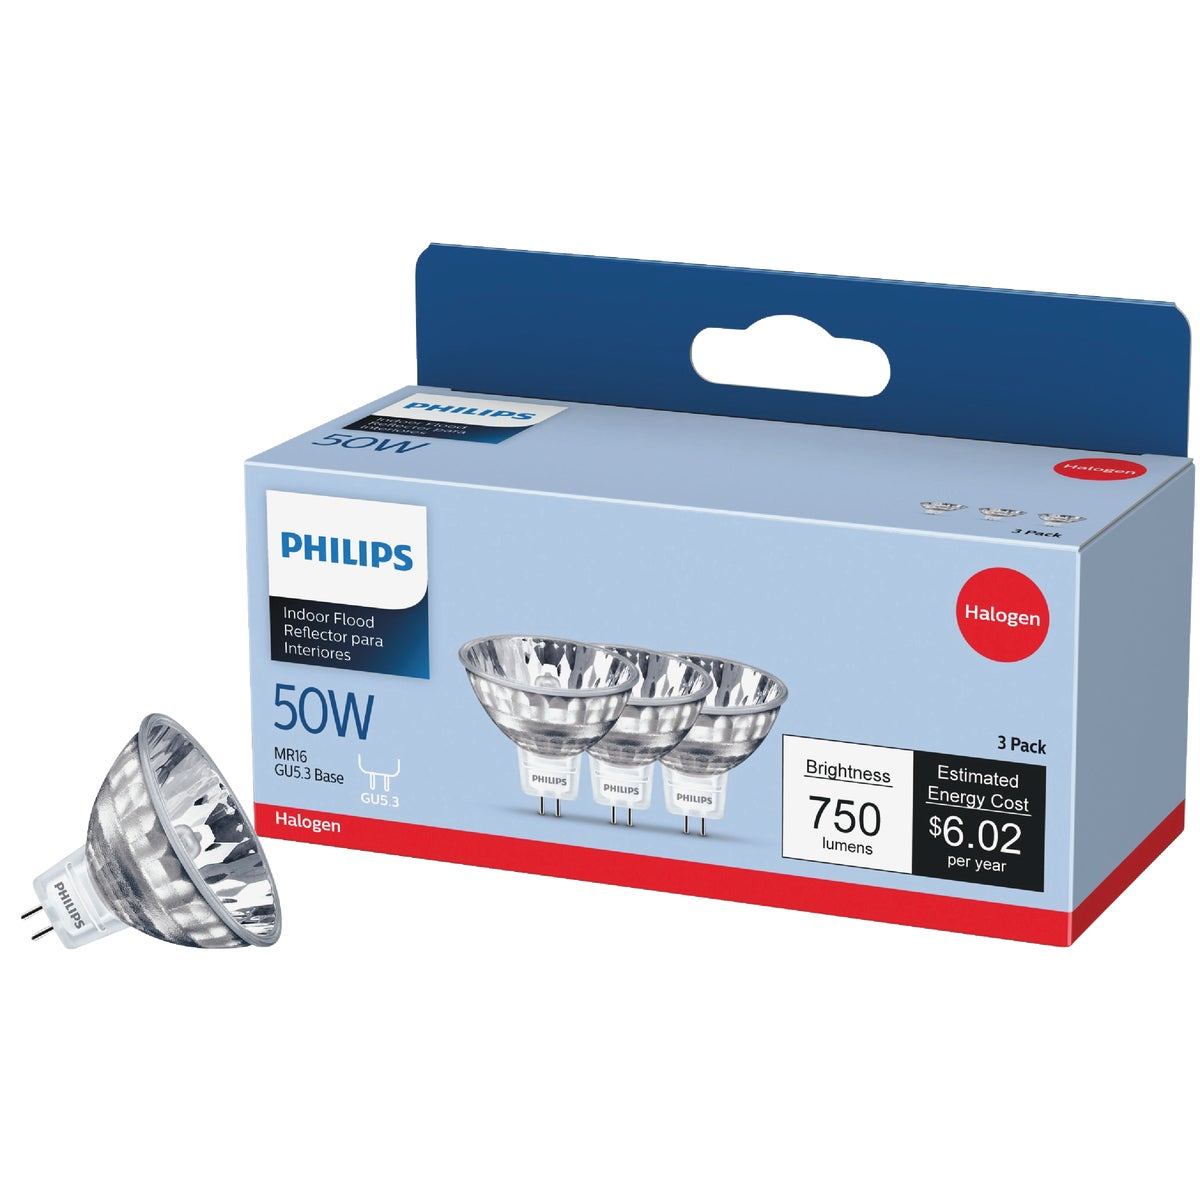 50W 3PK MR16 HALOGN BULB - 85296 by G E Lighting